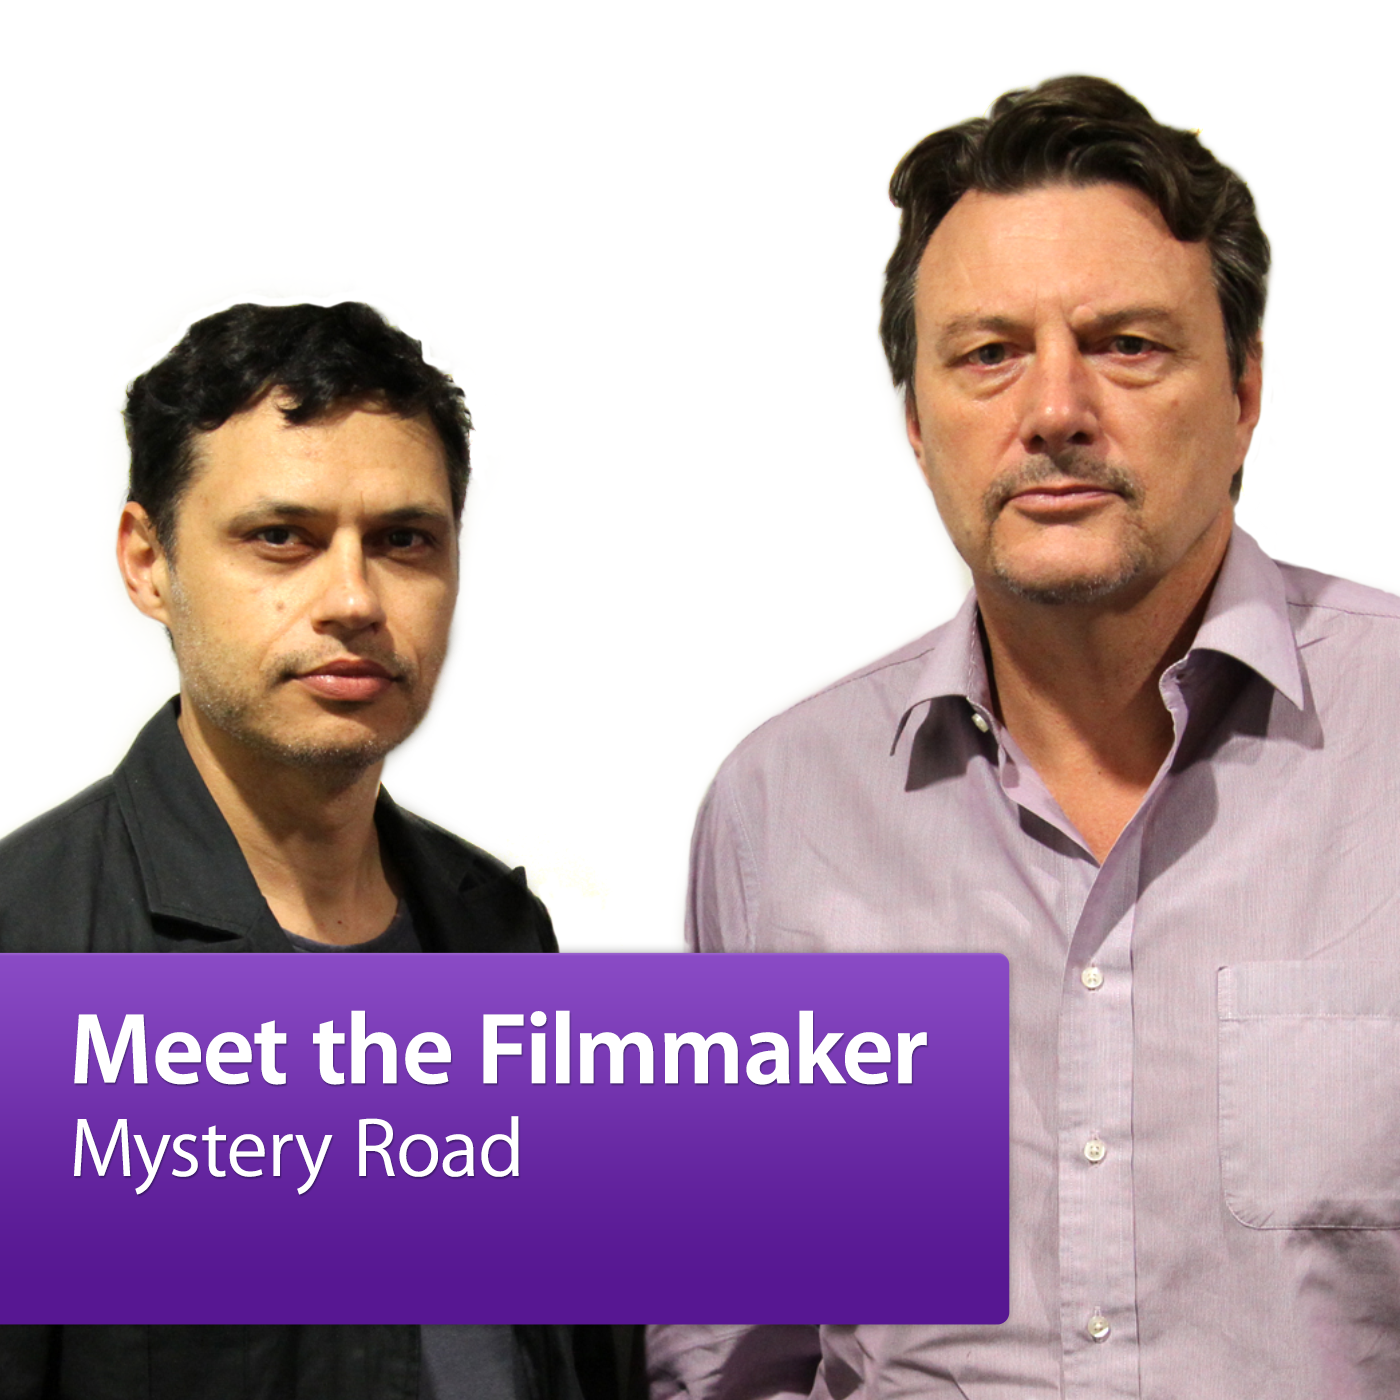 Mystery Road: Meet the Filmmaker